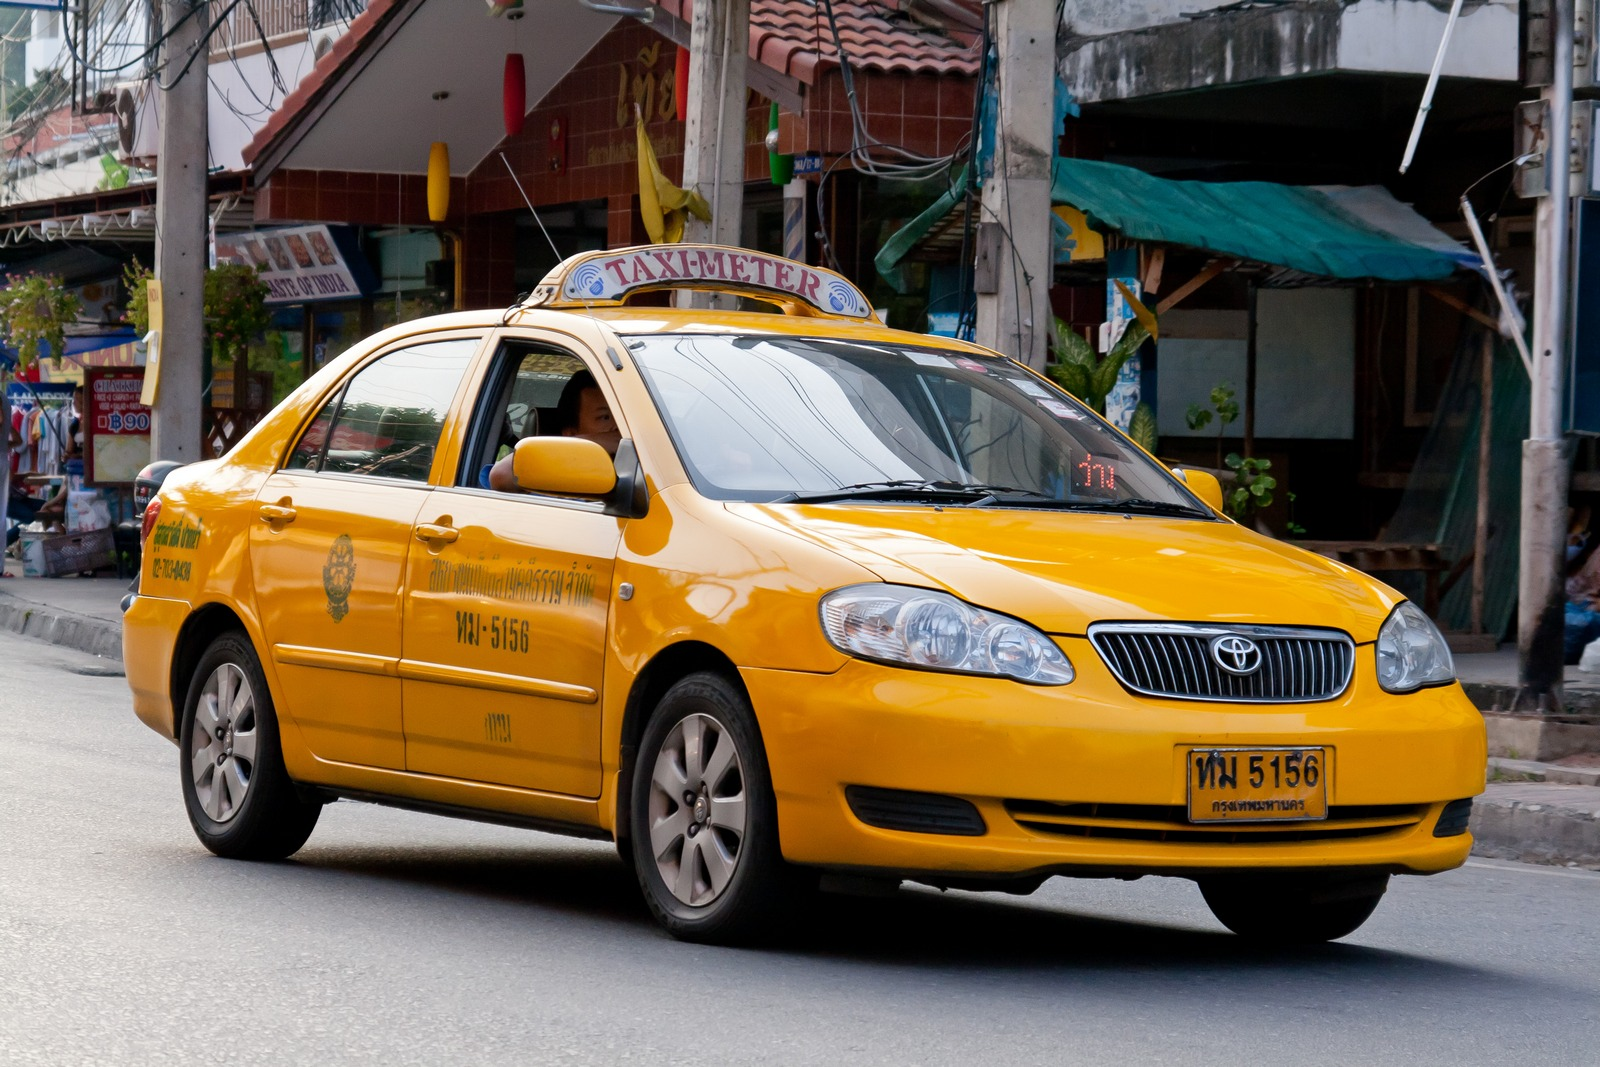 file taxi meter in pattaya 03